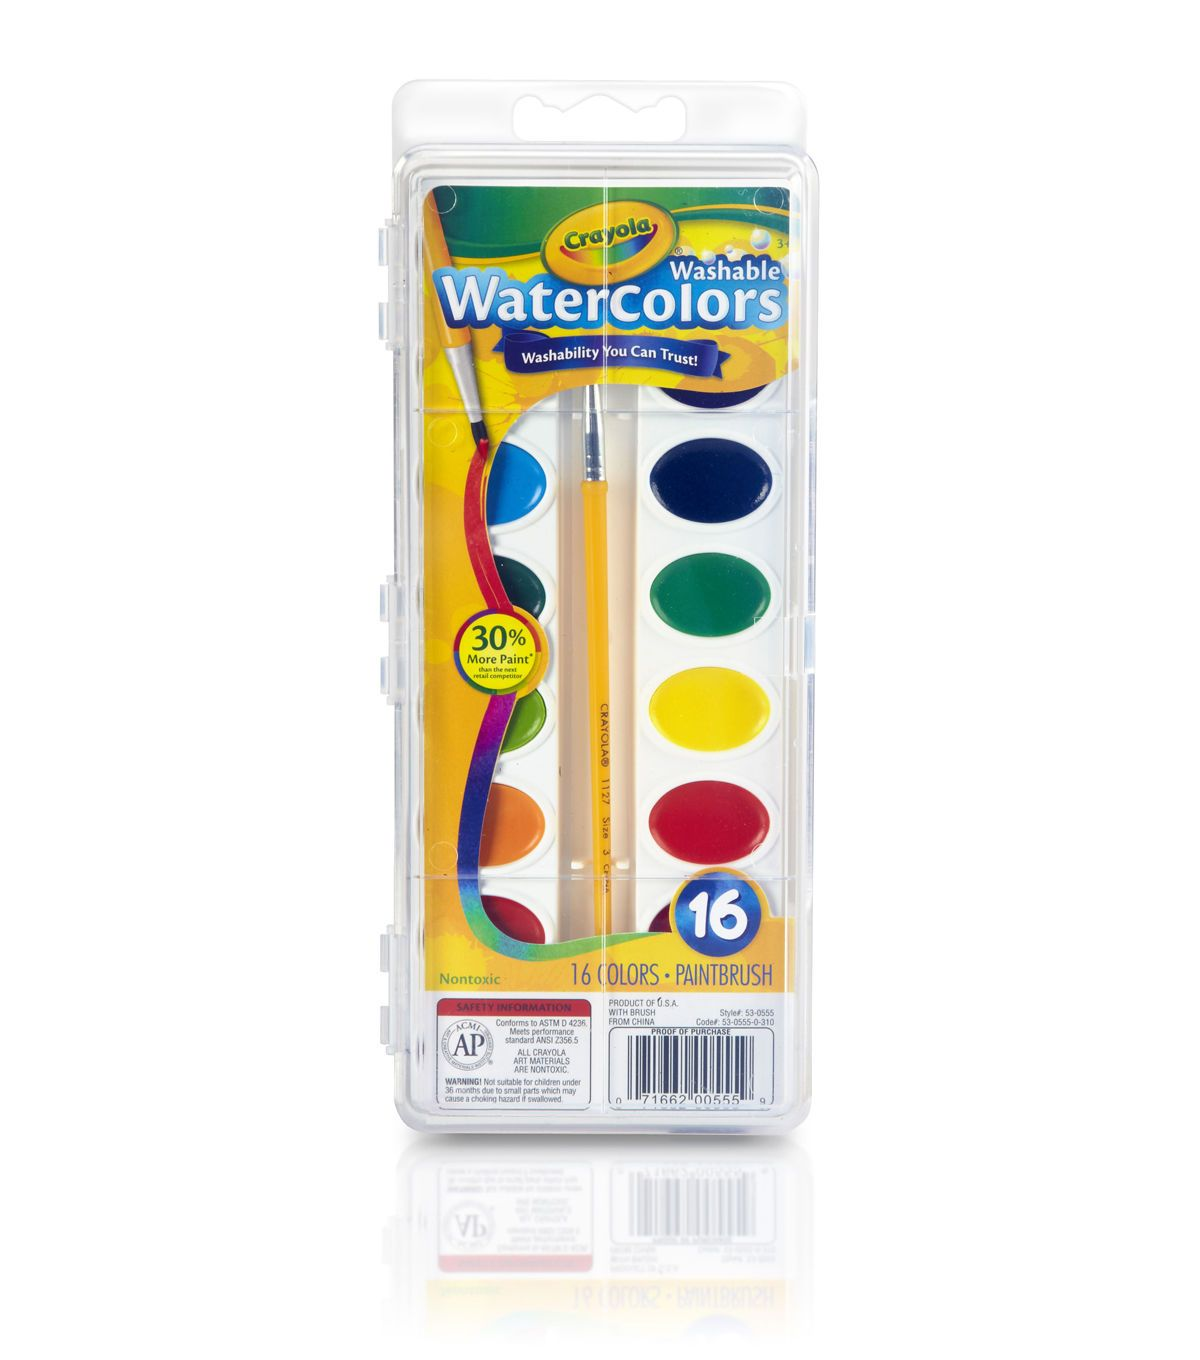 Crayola Watercolor Pan Set 16 Colors In 2019 Watercolor Pans